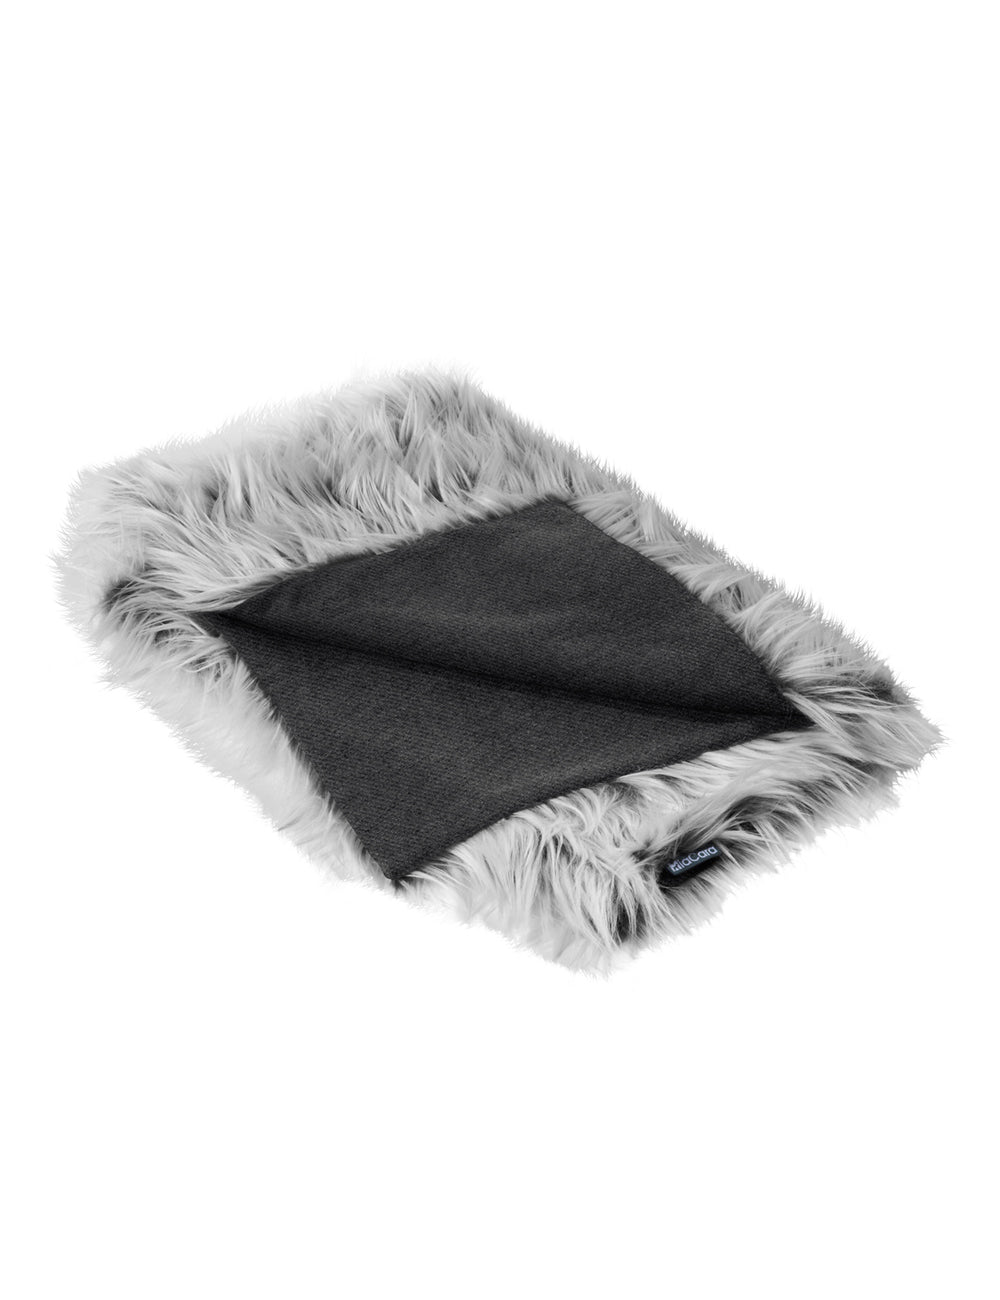 Capello Dog Blanket | White & Black